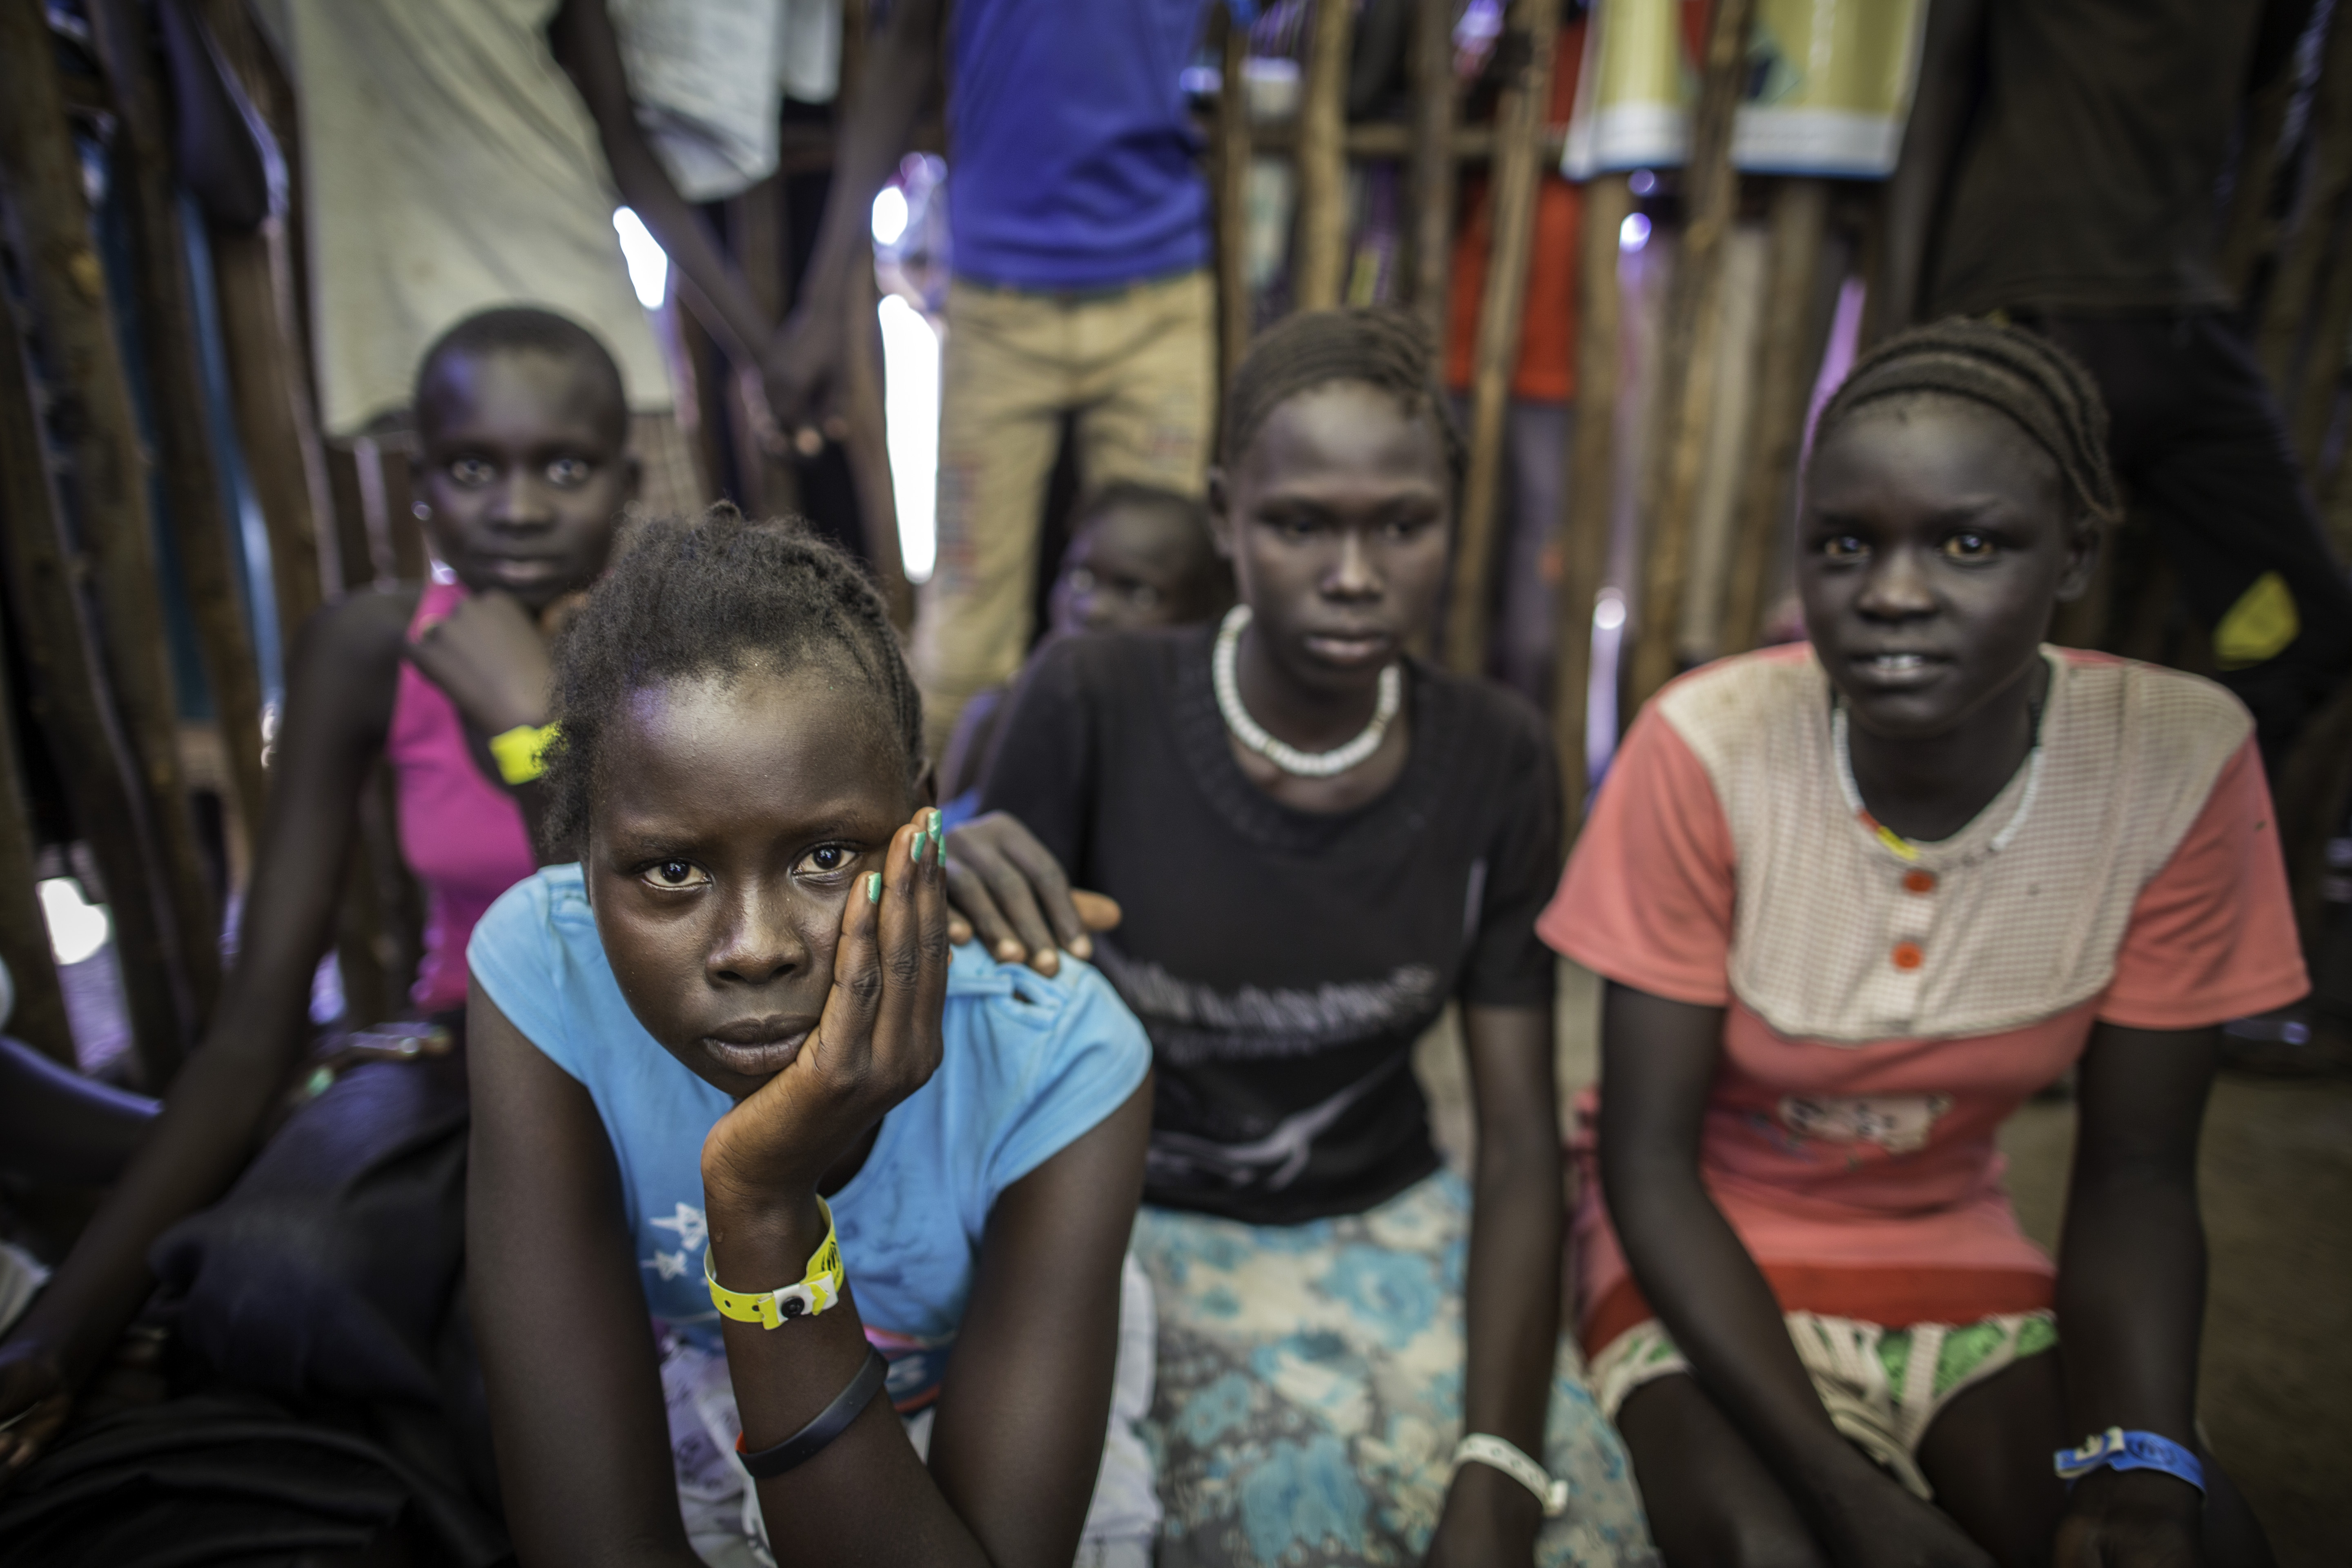 Newly arrived unaccompanied minors from South Sudan wait as they undergo registration in Kule camp, Ethiopia.